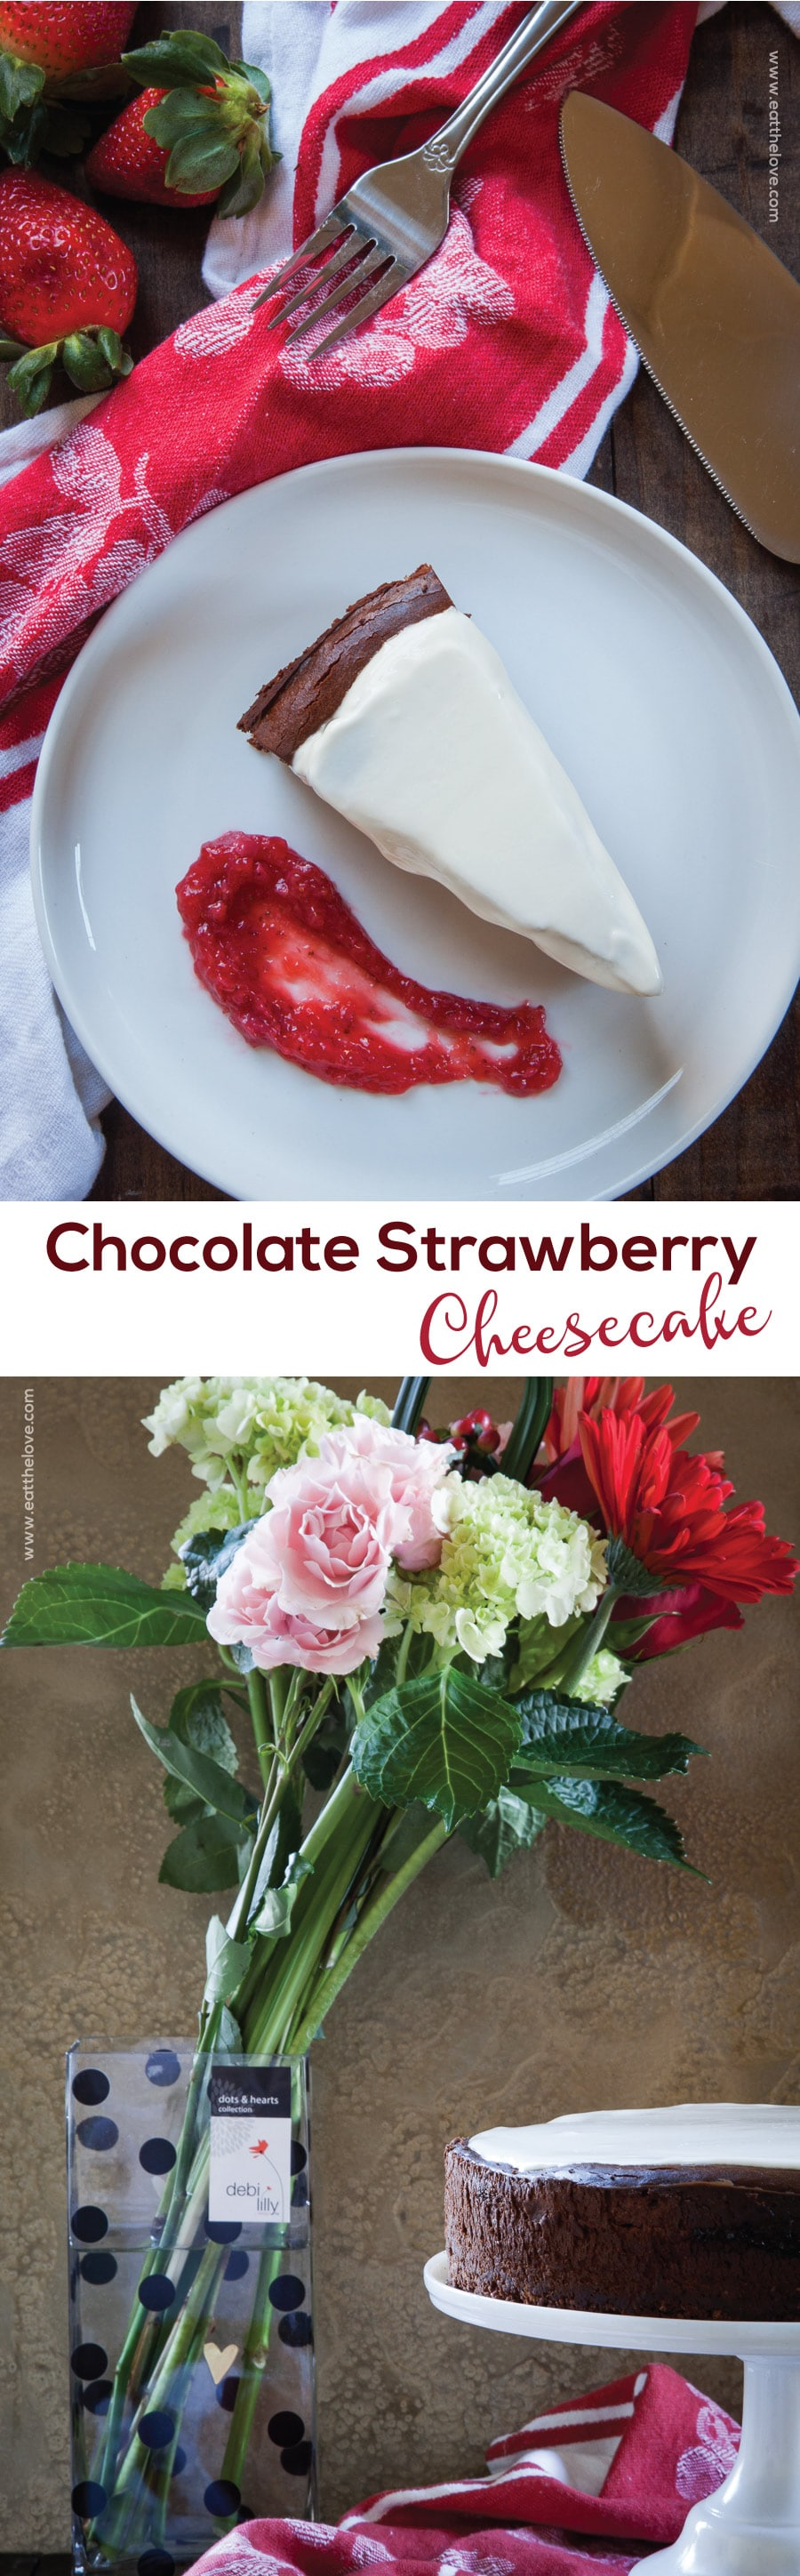 Chocolate Strawberry Cheesecake. Photo and recipe by Irvin Lin of Eat the Love.